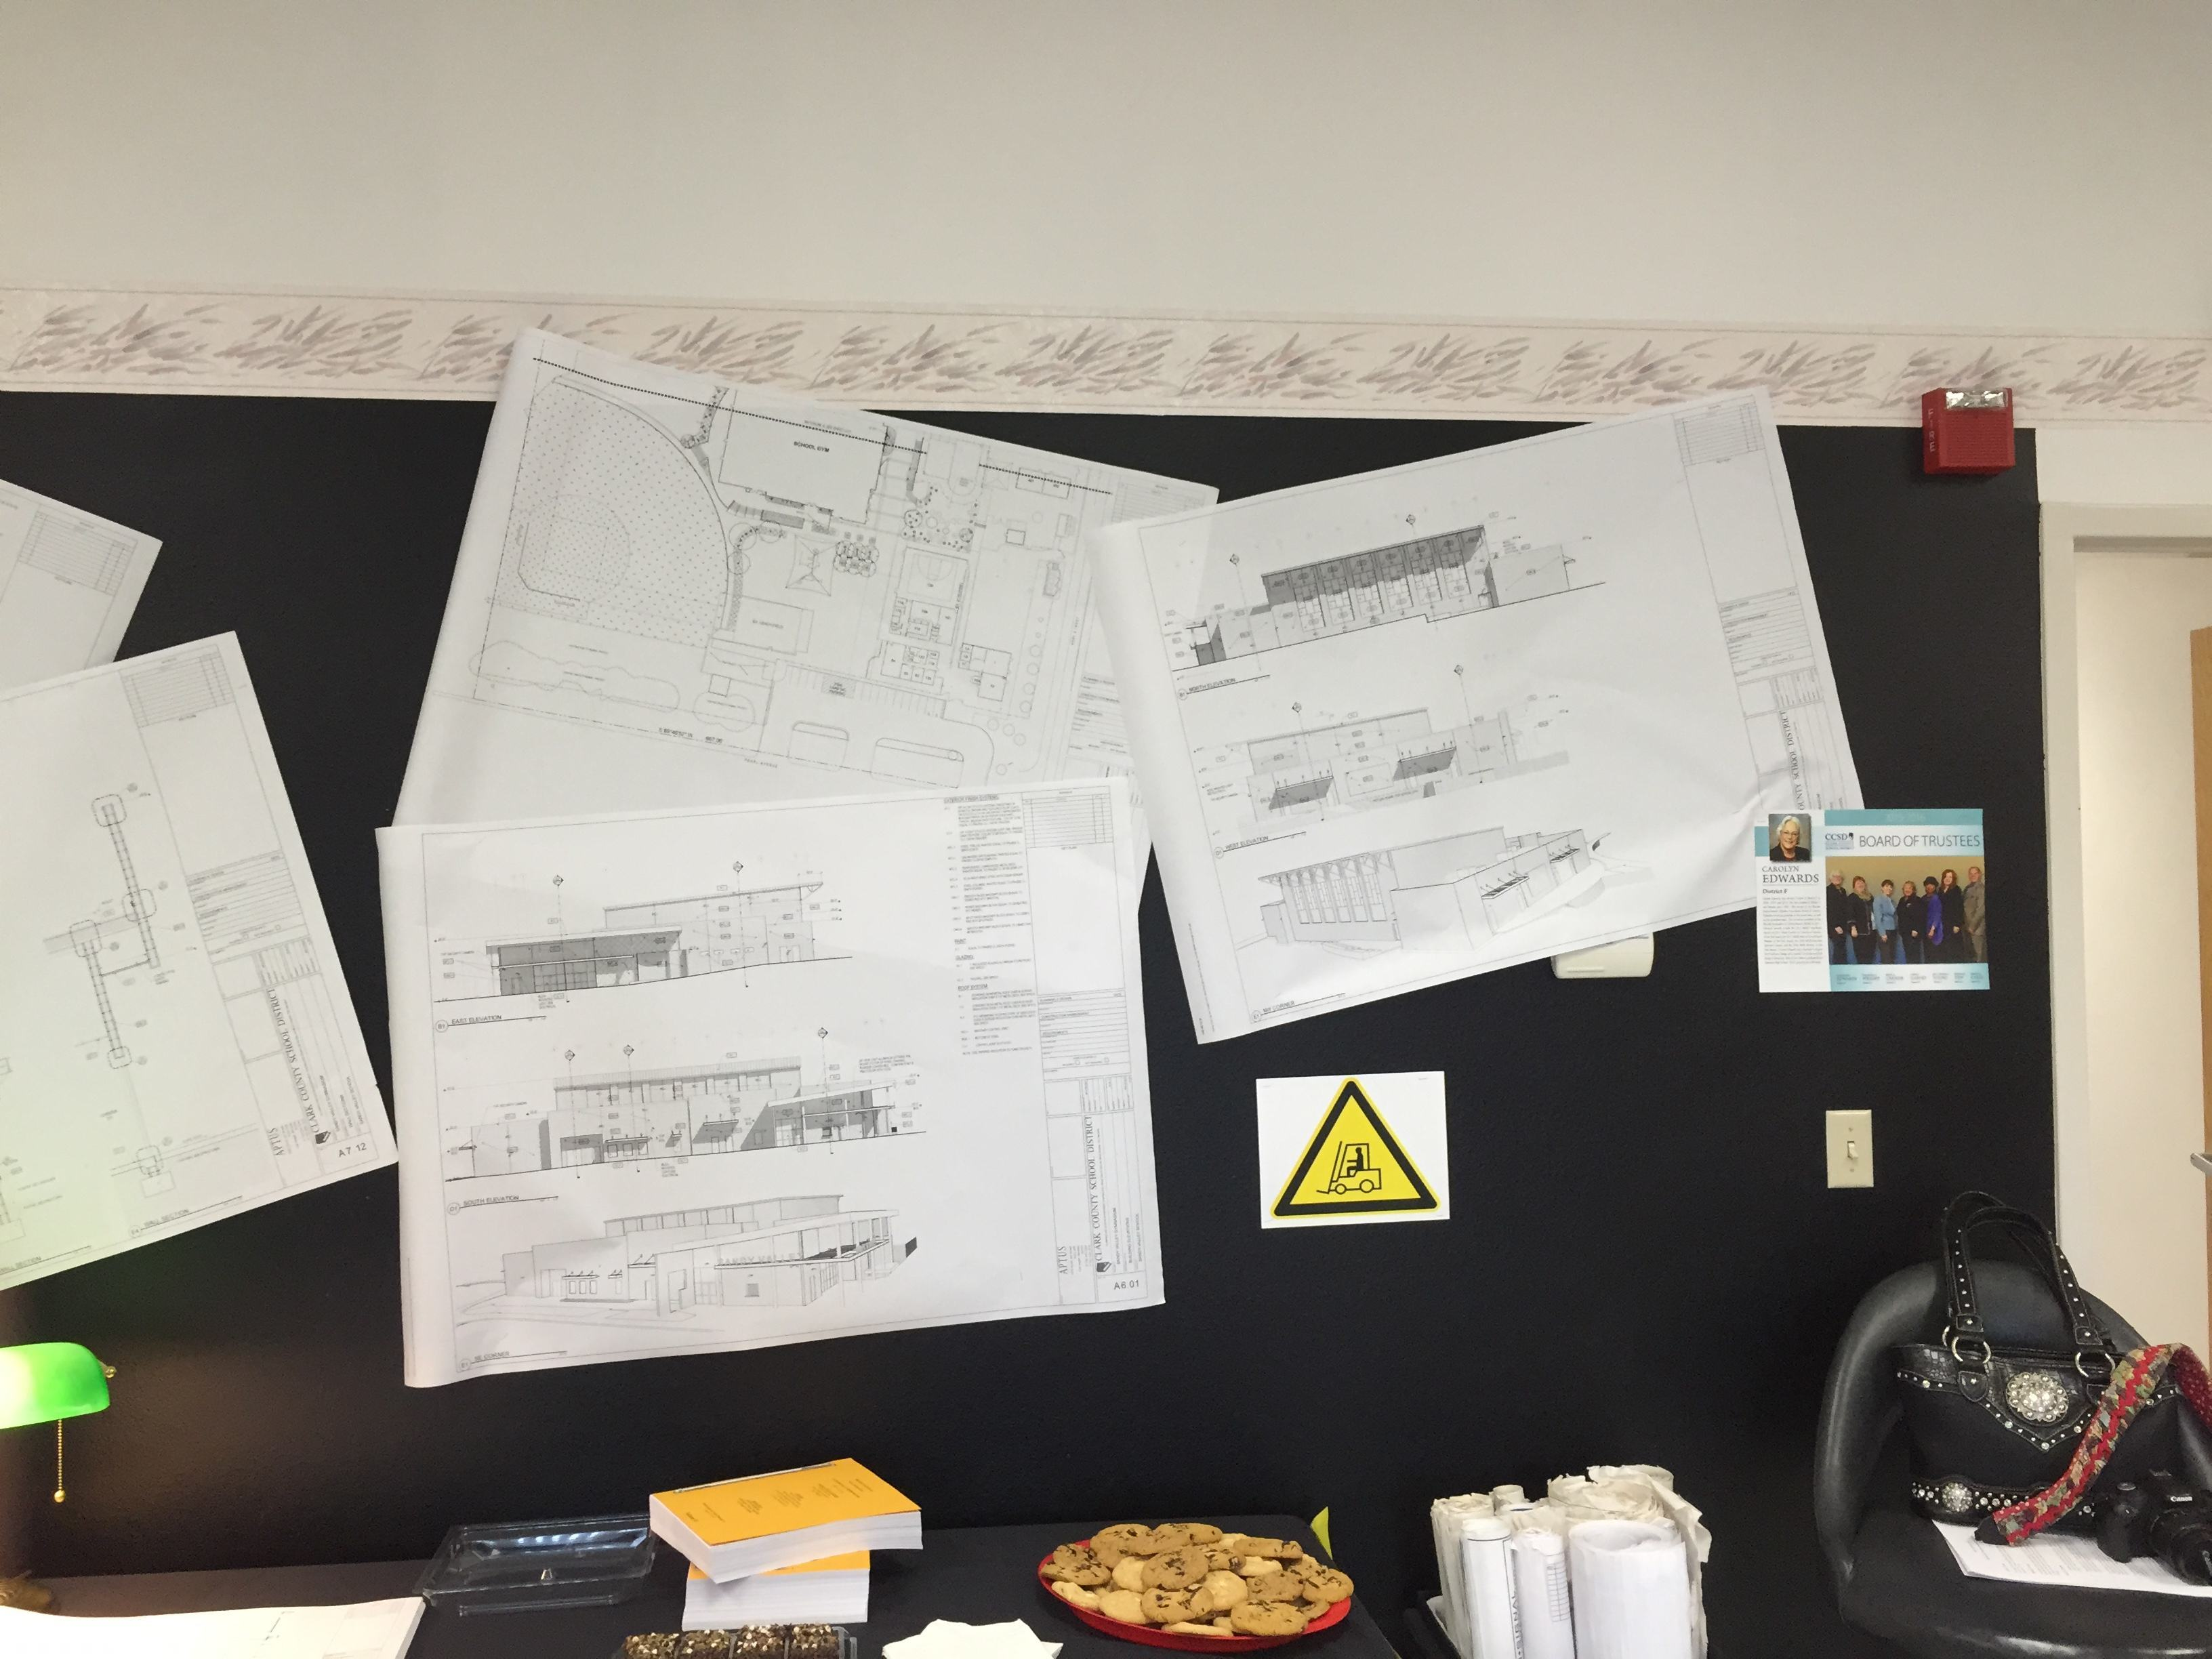 The Sandy Valley School staff decided to use our drawings as celebratory wallpaper in their break room. Thanks!